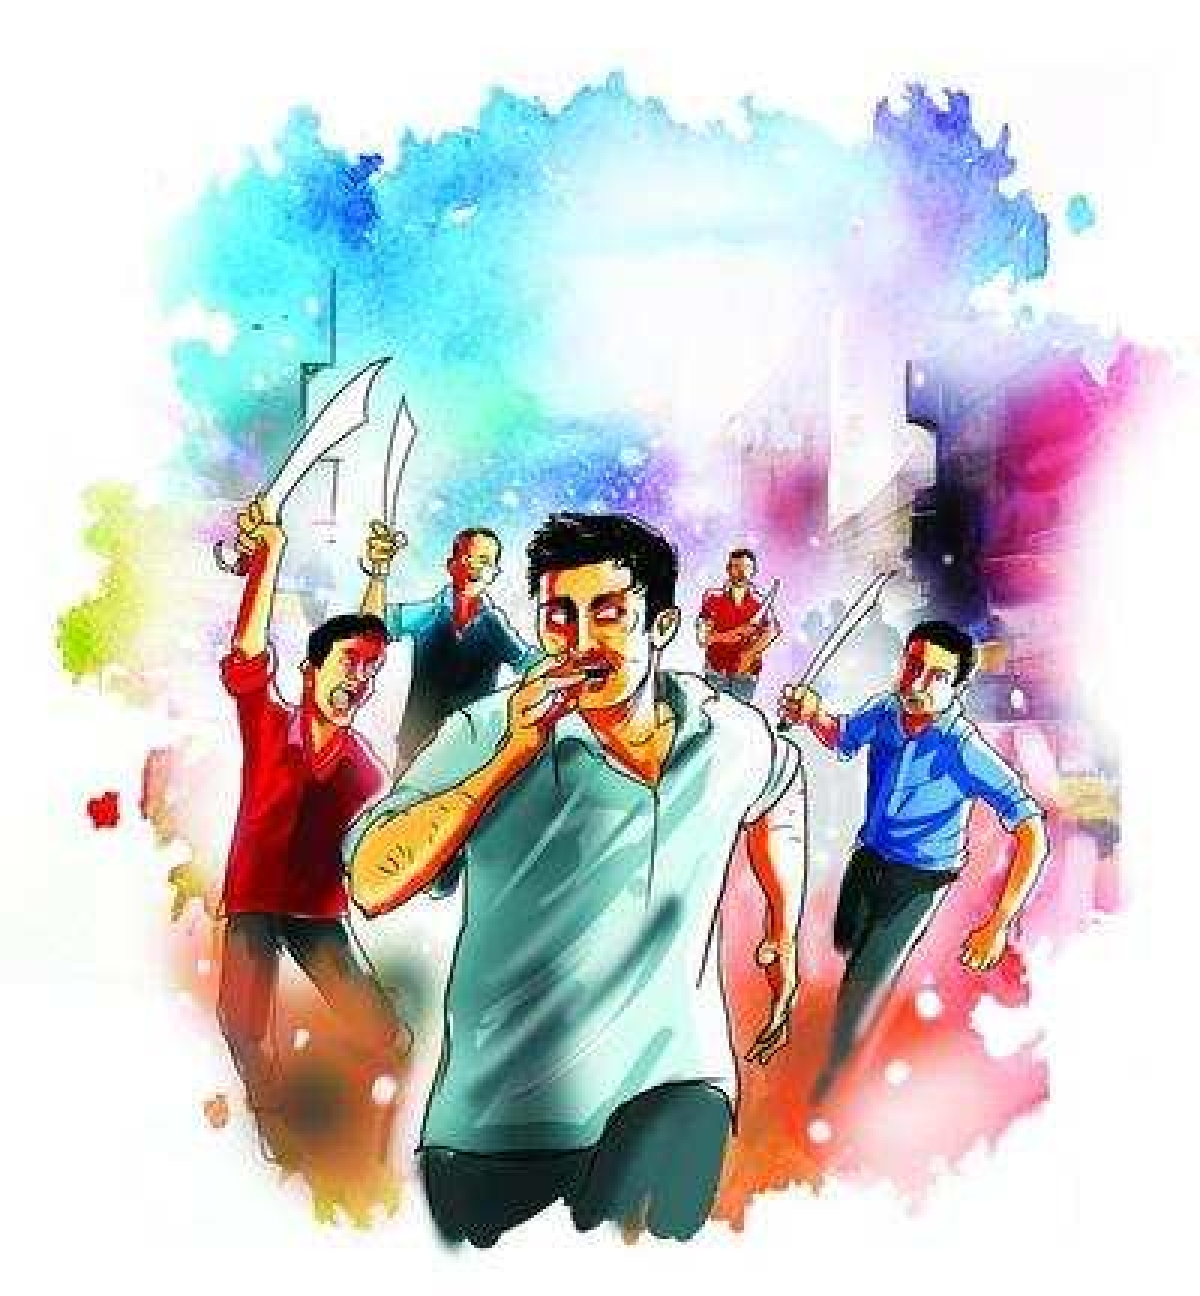 Indore: Youth stabbed by 4 over old rivalry